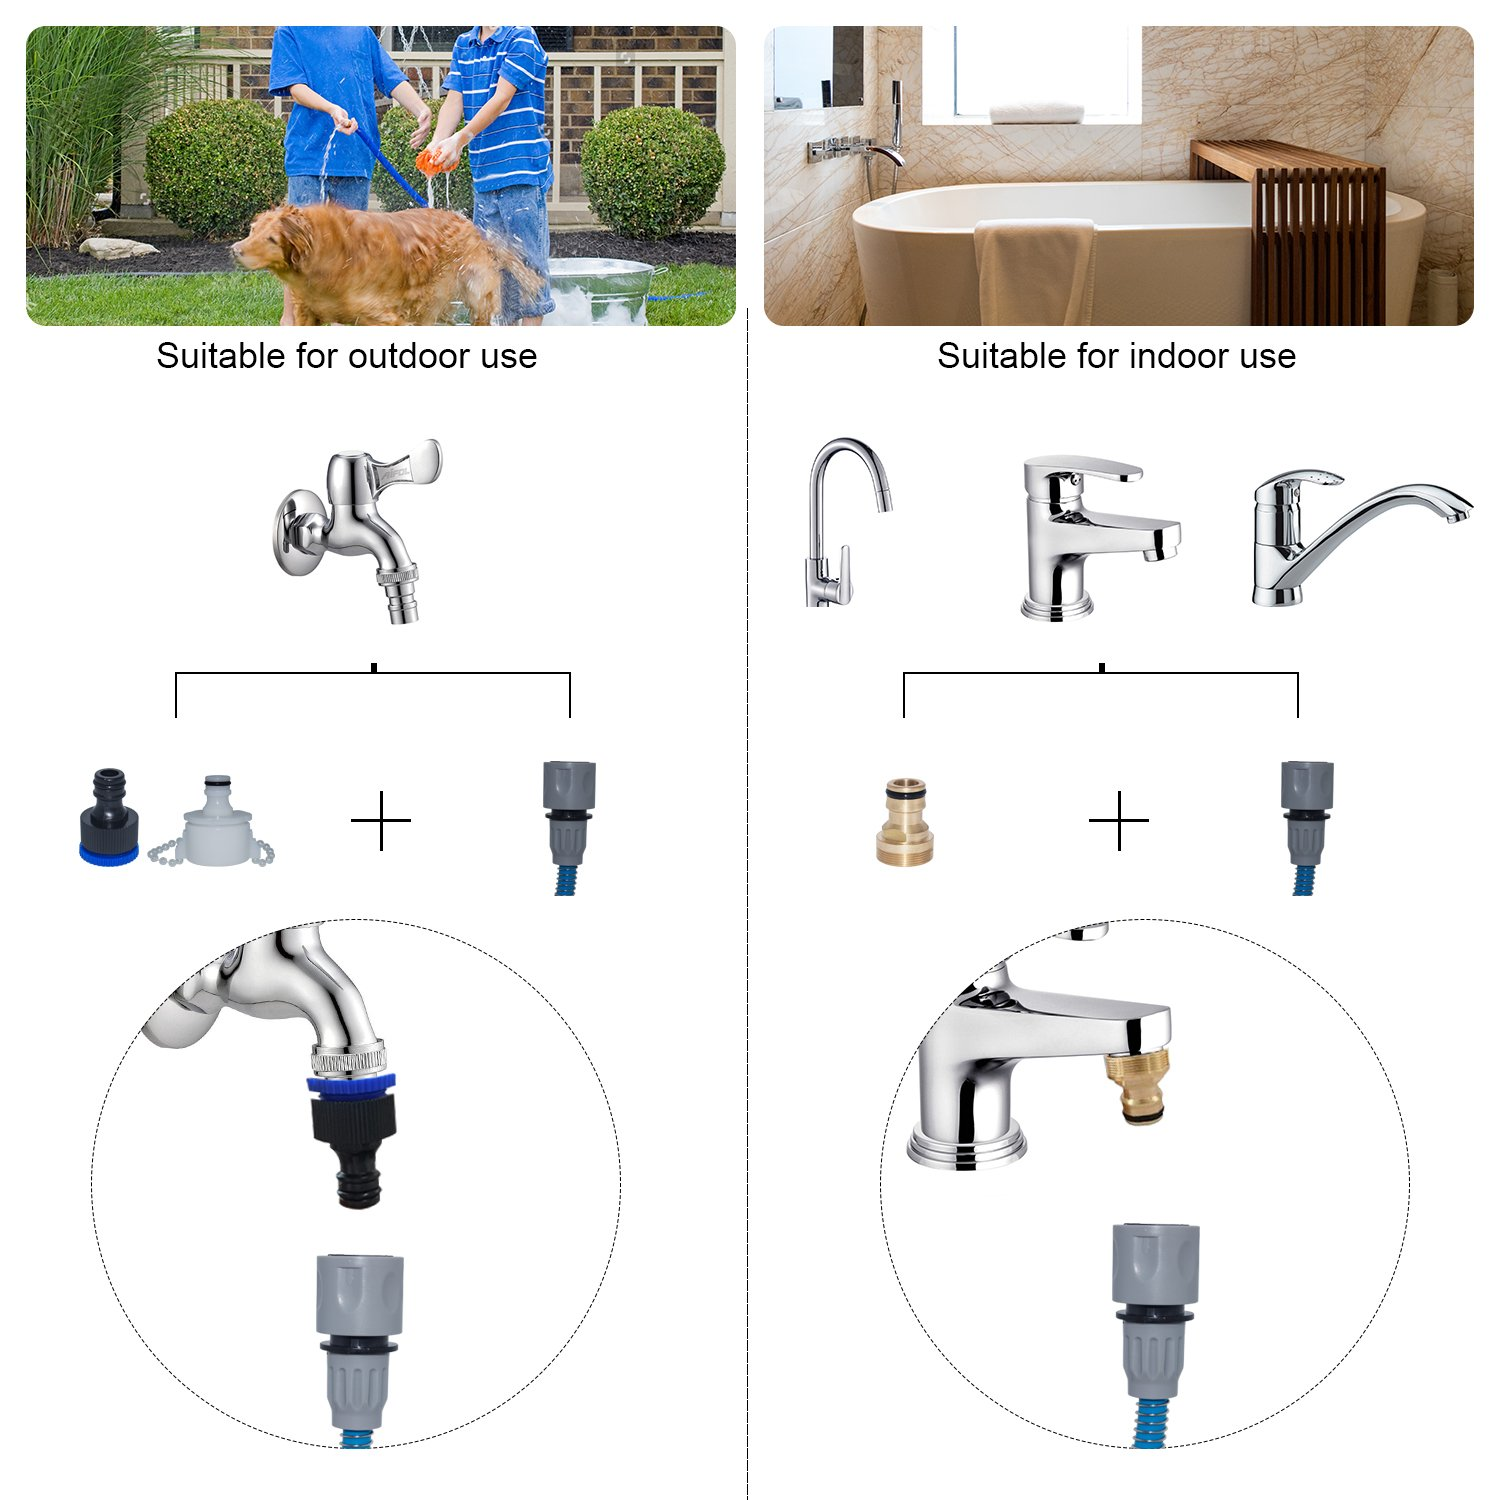 Pet Shower Tool with Nozzle, loveone(TM) Dog Bathing Sprayer with 3 Hose Adapters, Portable Grooming Tools Adjustable Silicone Massage Brush for Dogs/ Cats/ Horses/ Animals Suit for Outdoor/ Indoor by loveone (Image #5)